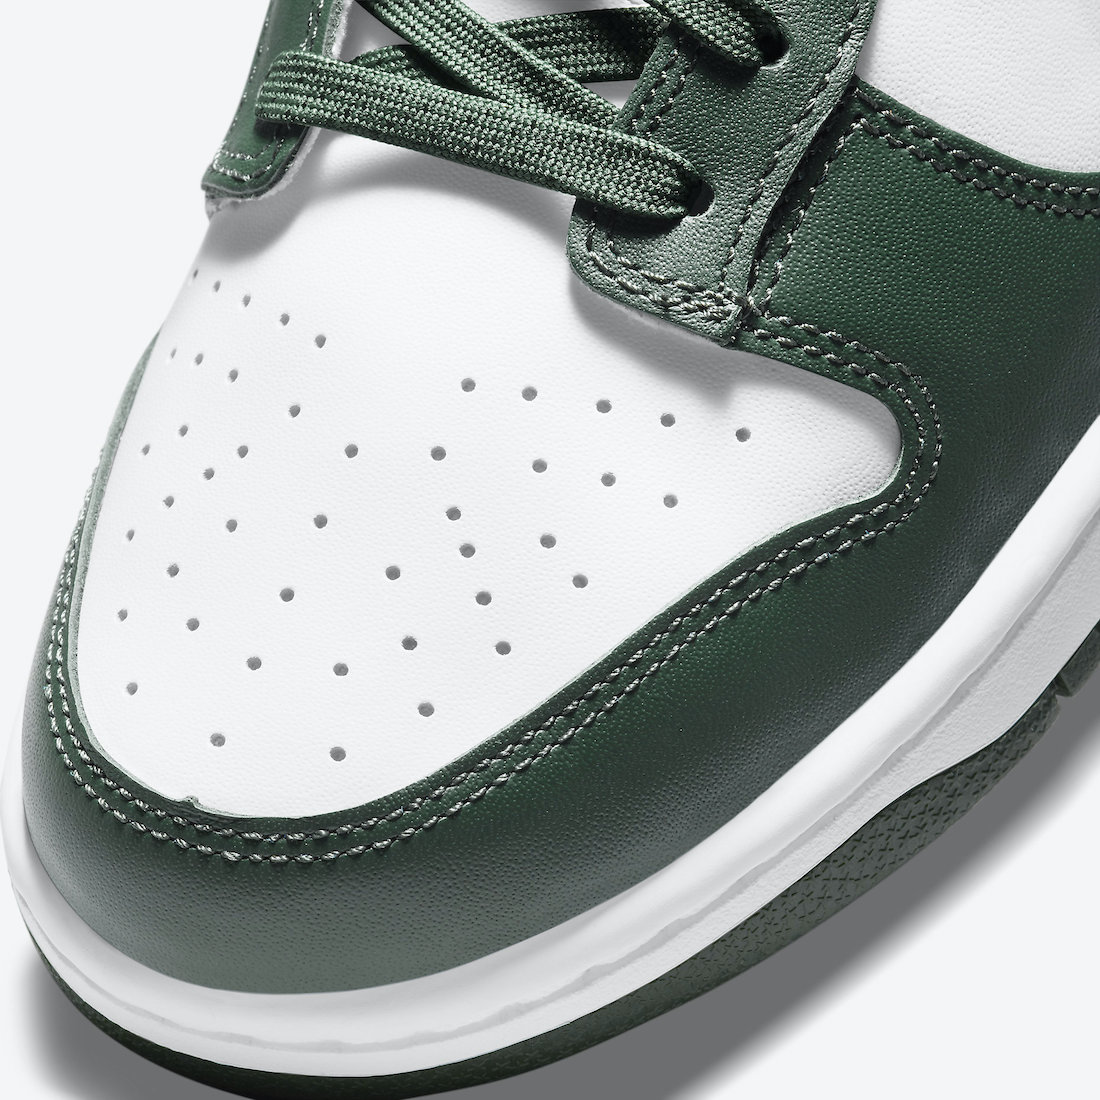 Nike-Dunk-Low-Team-Green-DD1391-101-Release-Date-Price-6